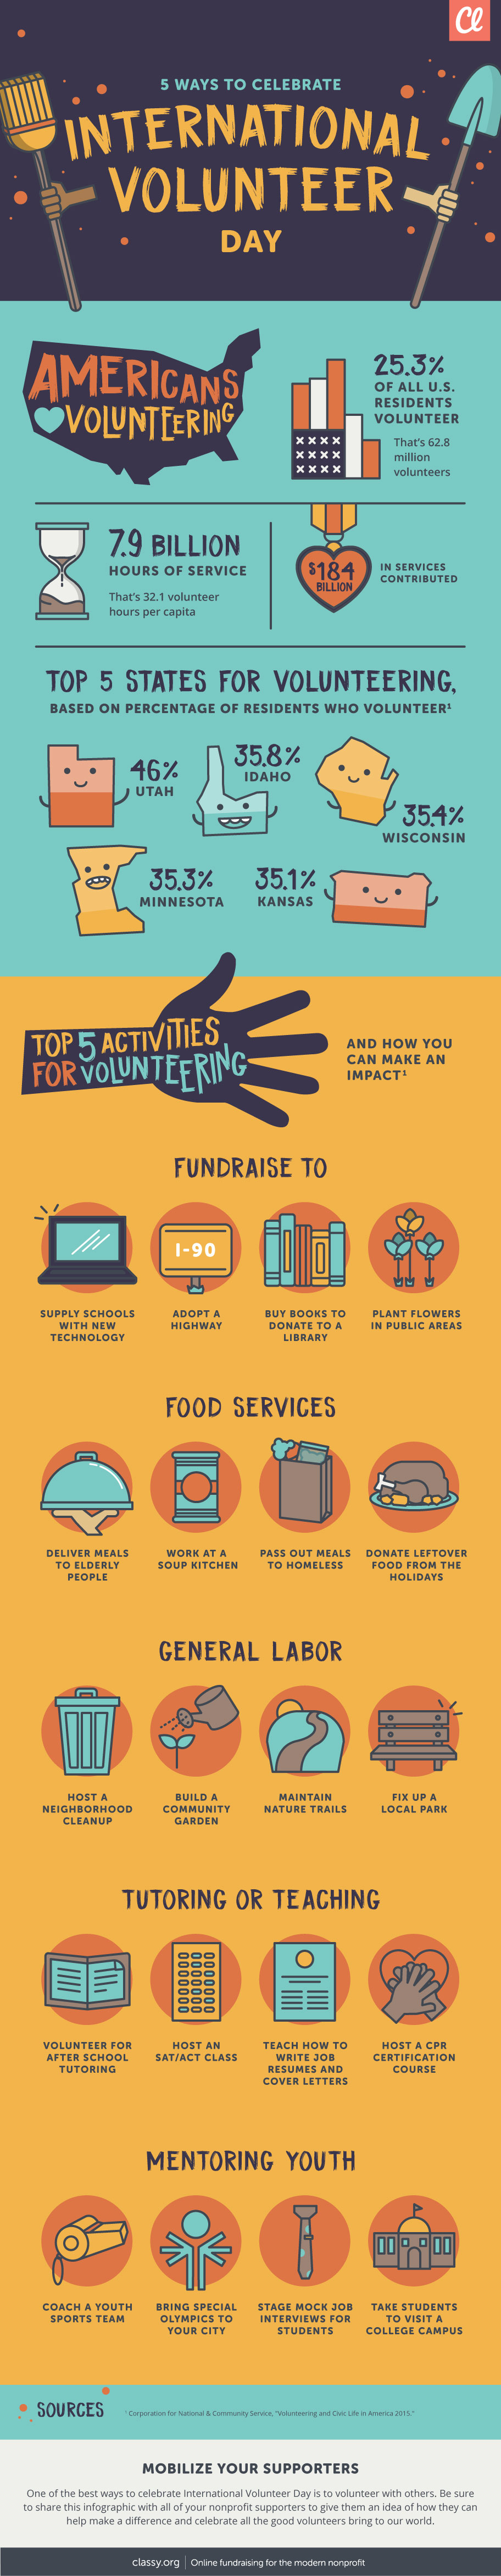 international volunteer day infographic